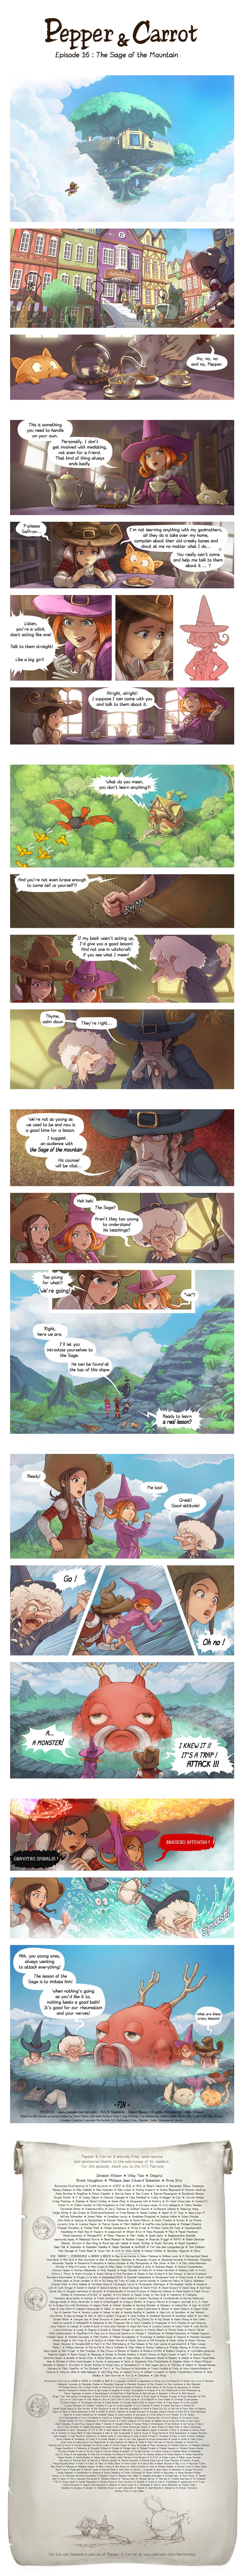 Episode 16: The Sage of the Mountain by Deevad on DeviantArt >> also latest episode for now ^.^